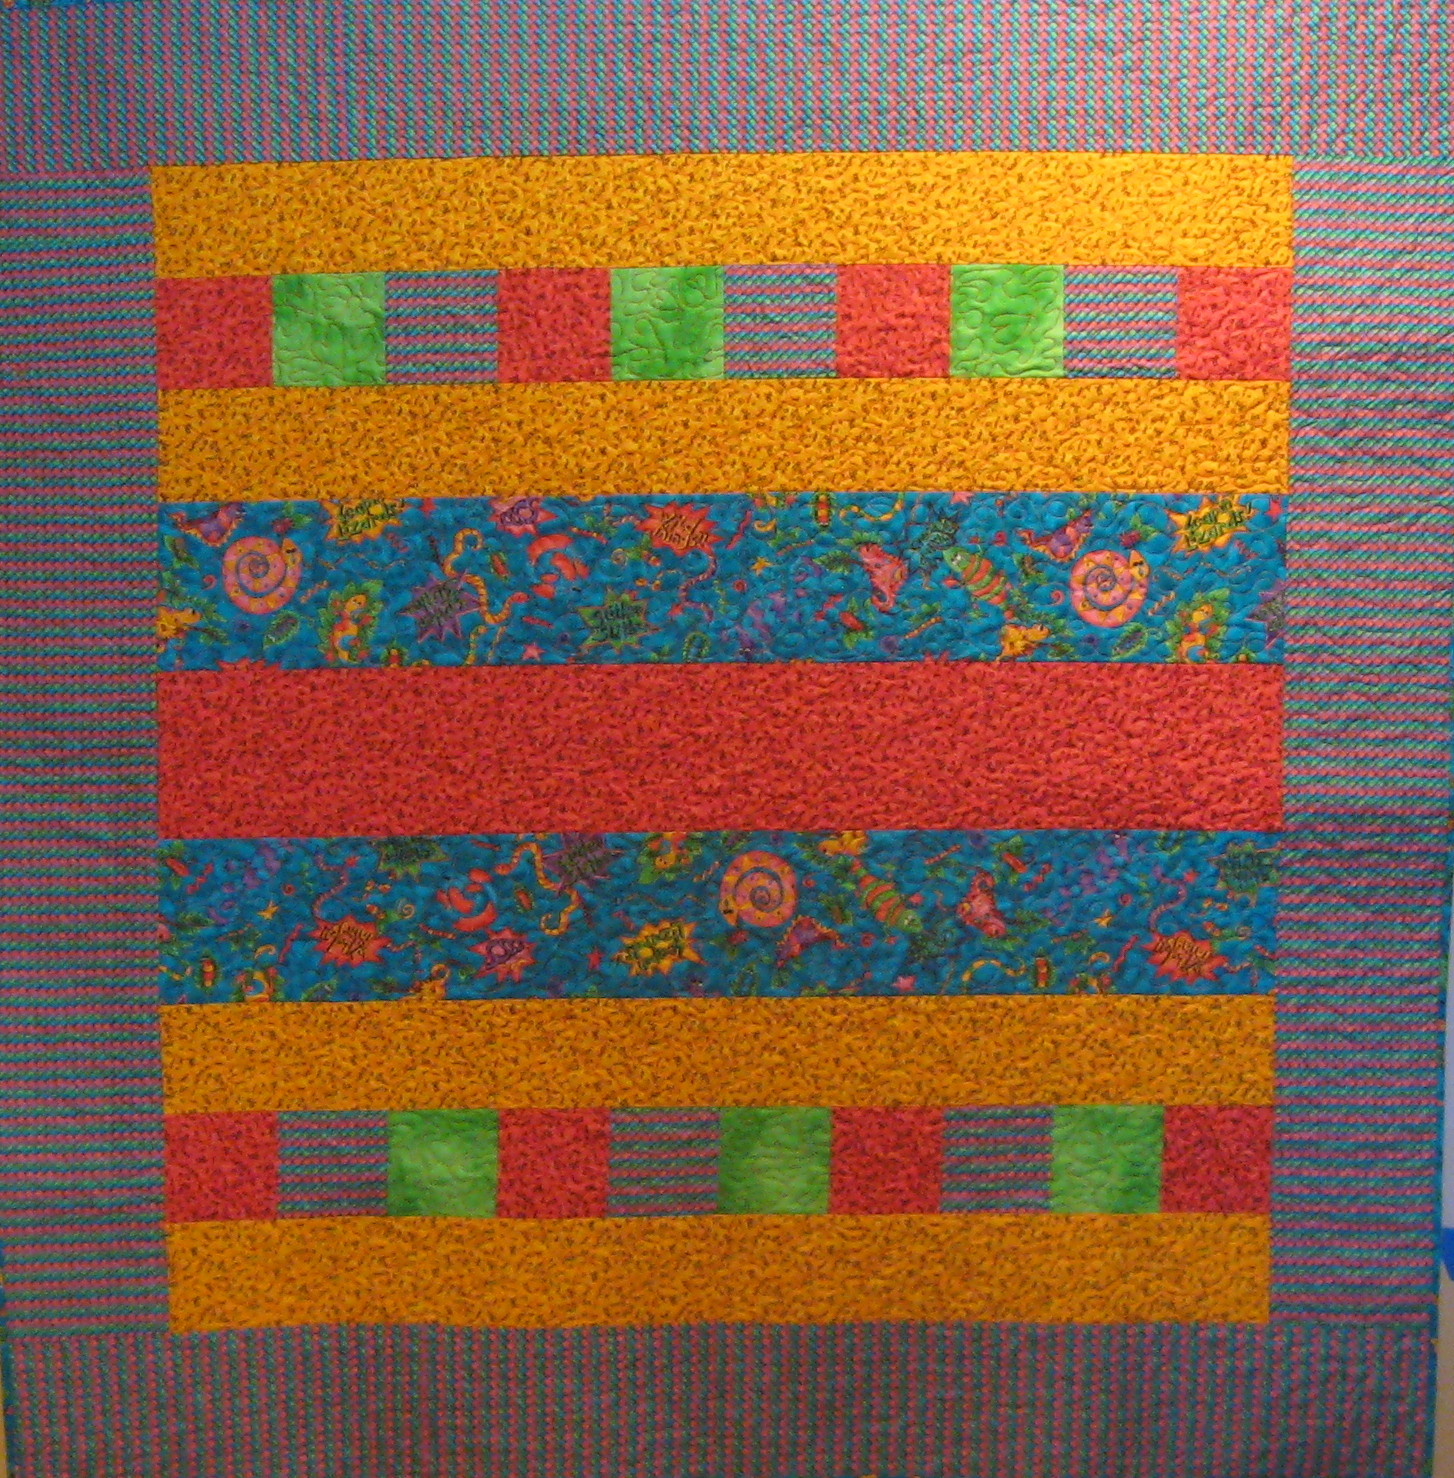 Quilter beth 39 s blog comfort for kids charity project and for Bright childrens fabric